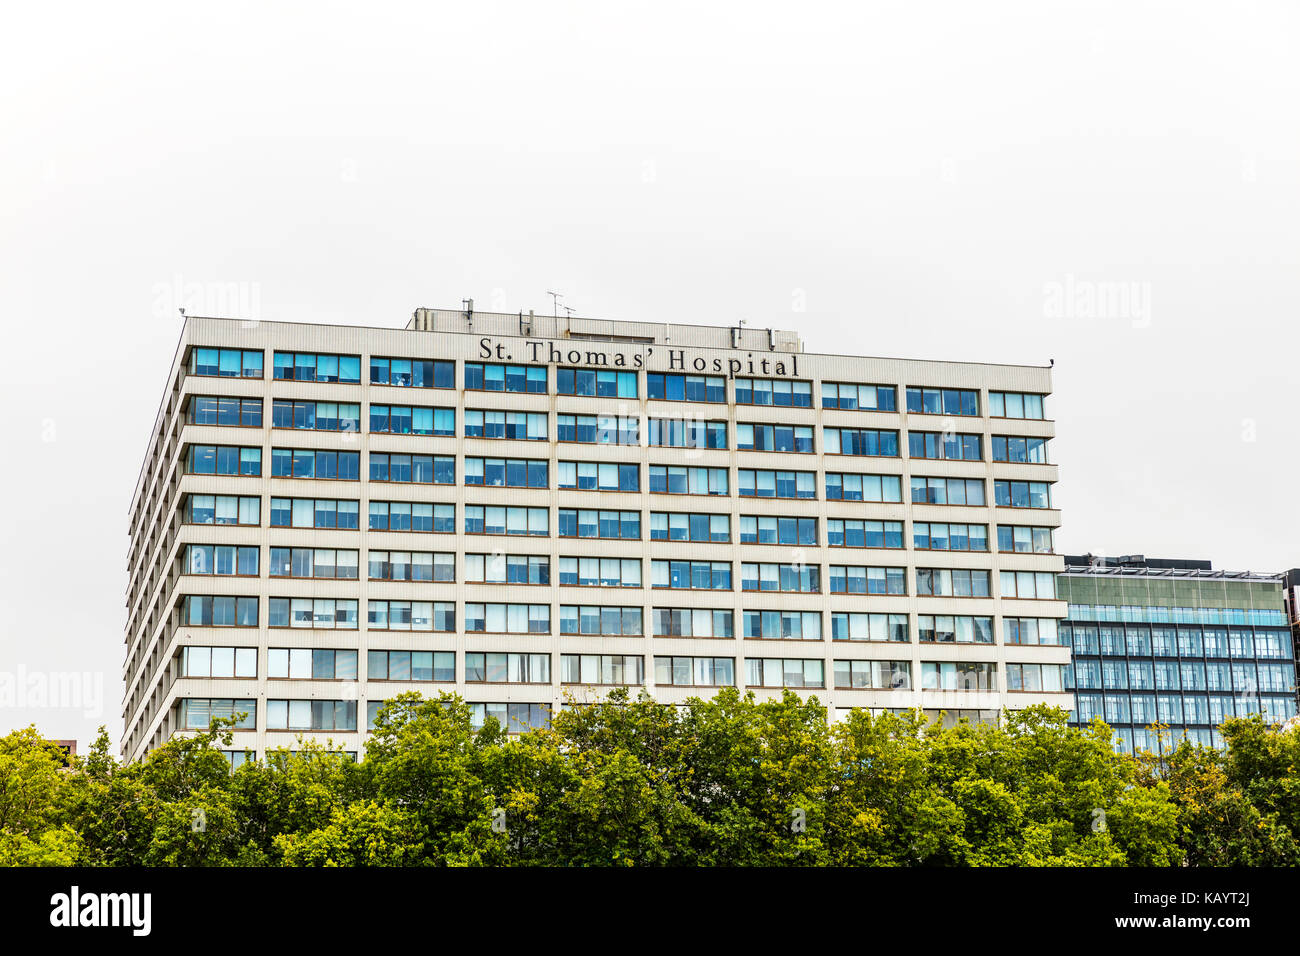 St Thomas' Hospital London, St. Thomas' Hospital, Westminster Bridge Road, London, SE1 7EH, United Kingdom, - Stock Image